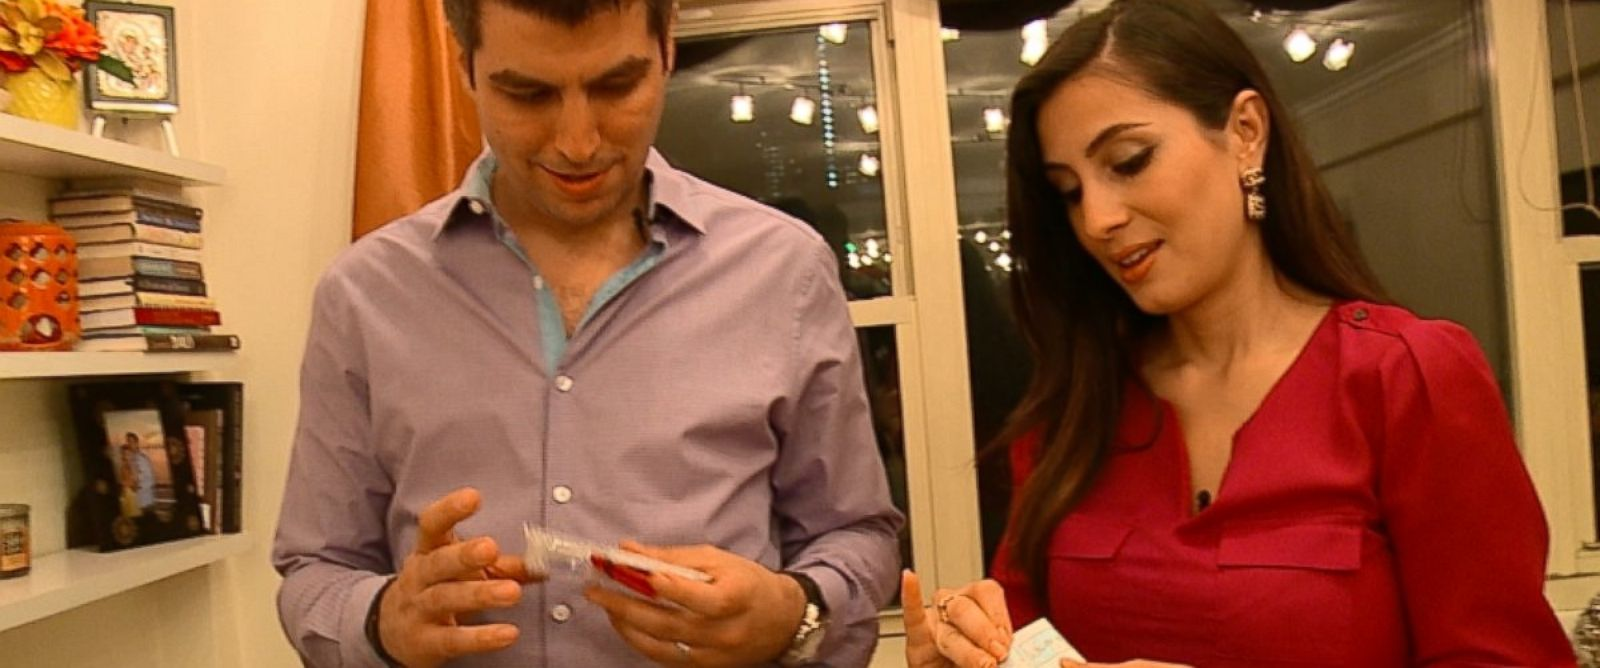 PHOTO: Taso and Maria Pardalis, who have been married for five years, are seen here holding an Instant Chemistry kit.